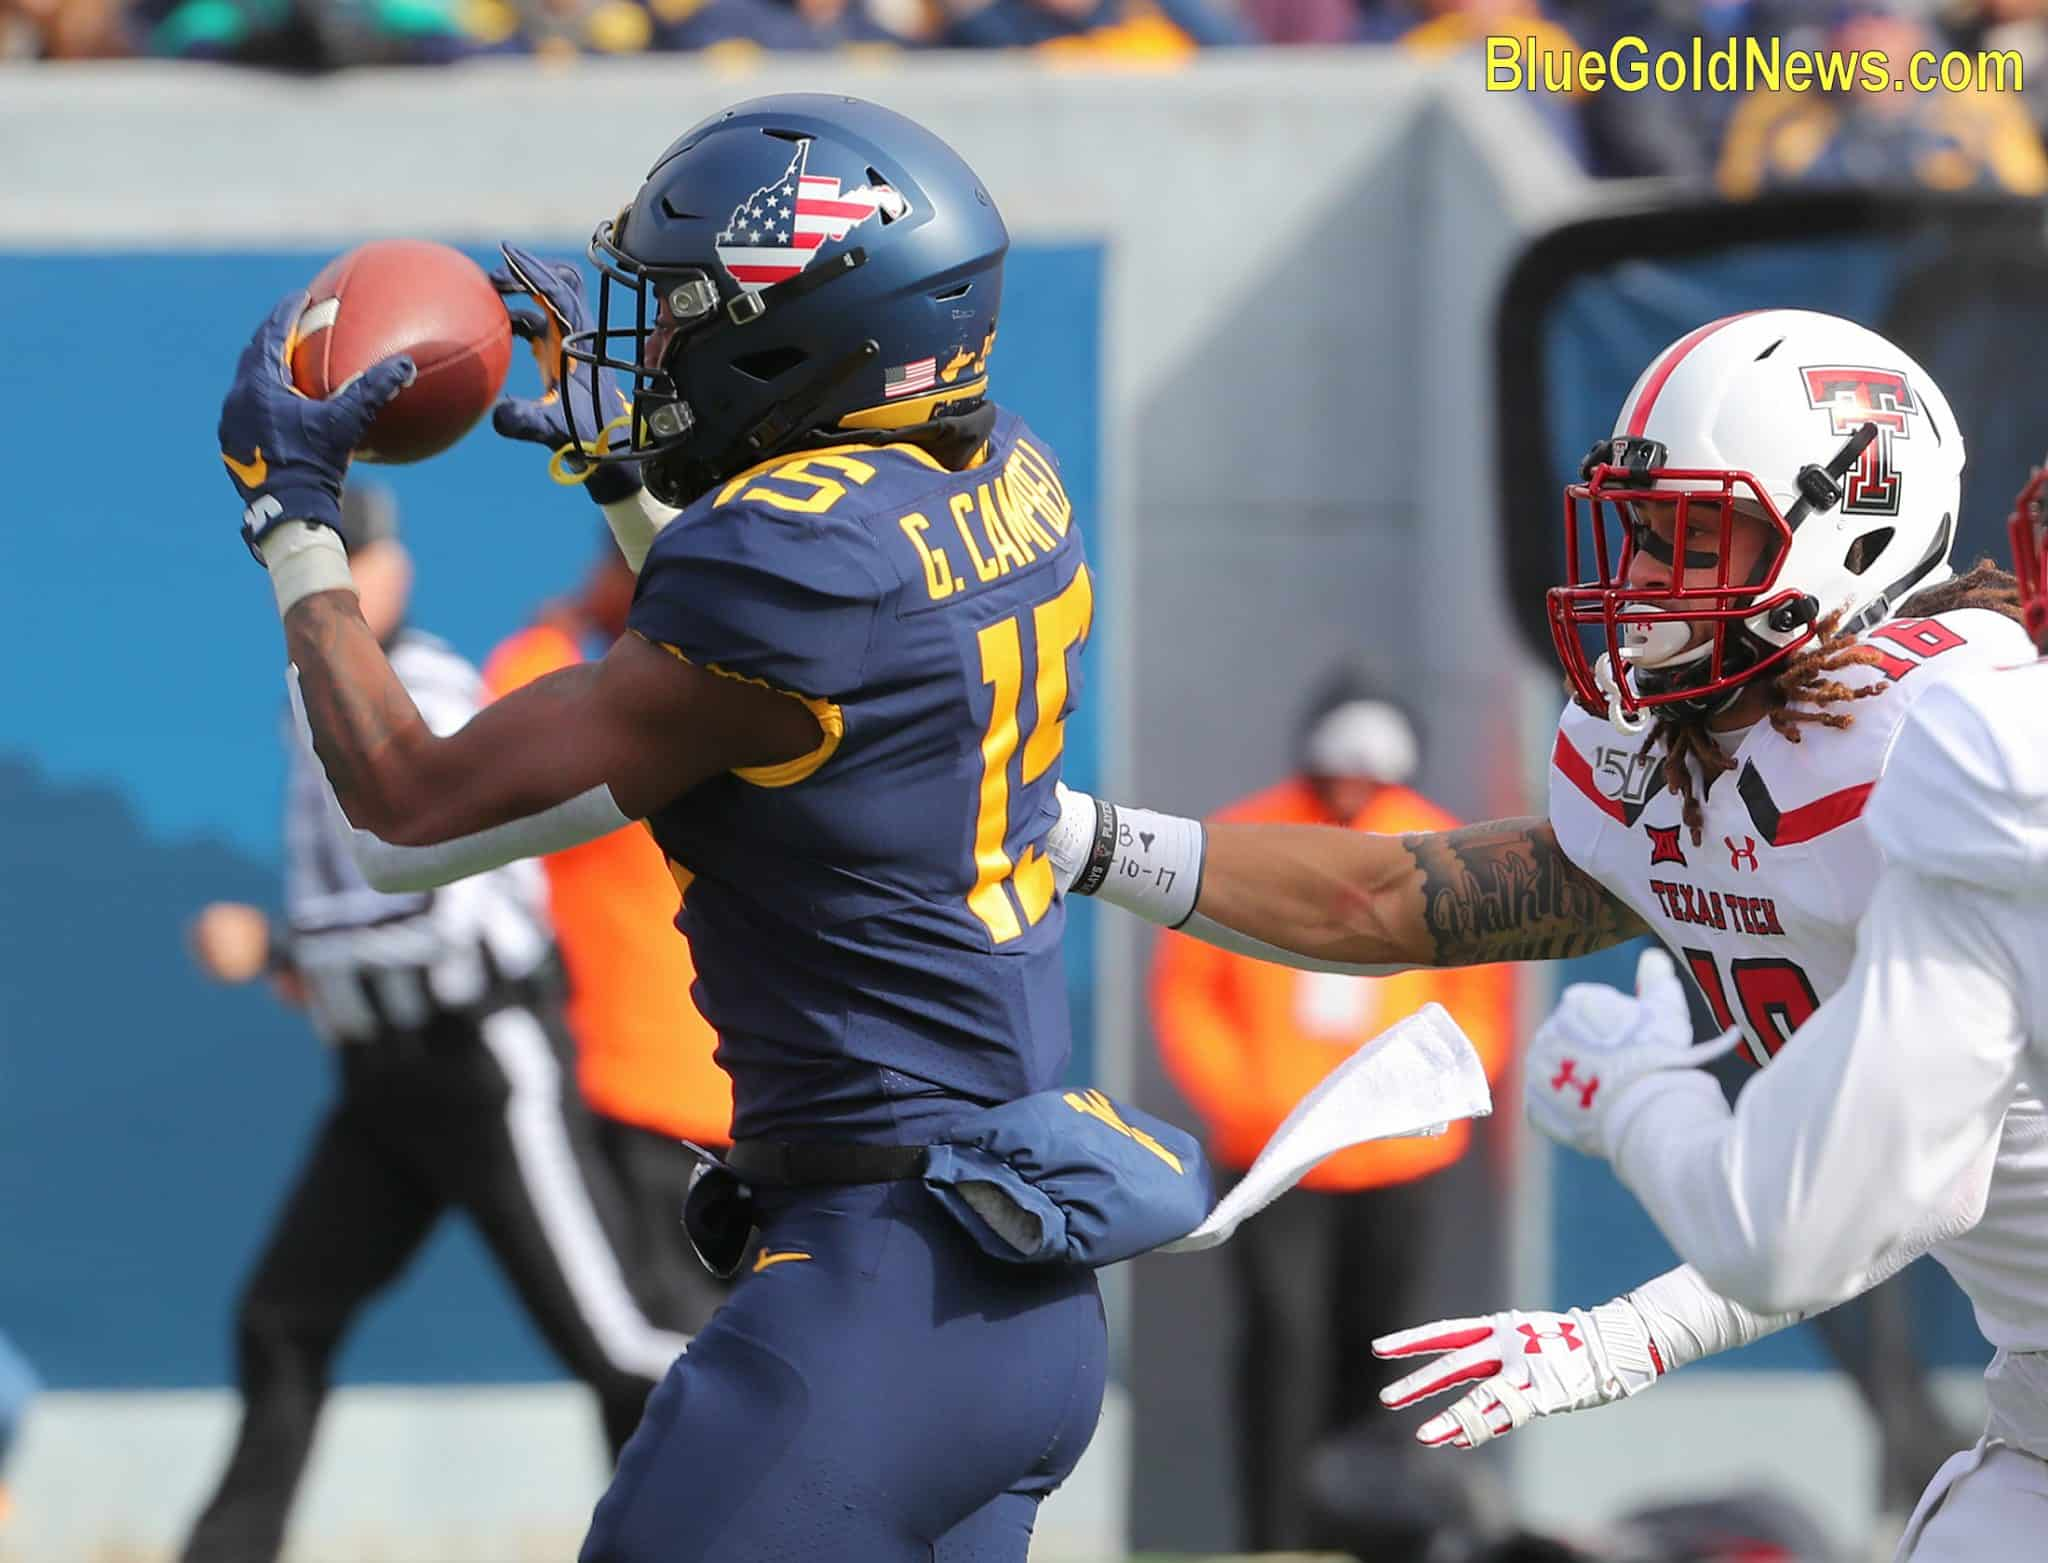 West Virginia receiver George Campbell (15) hauls in a long reception behind Texas Tech's Thomas Leggett (16)